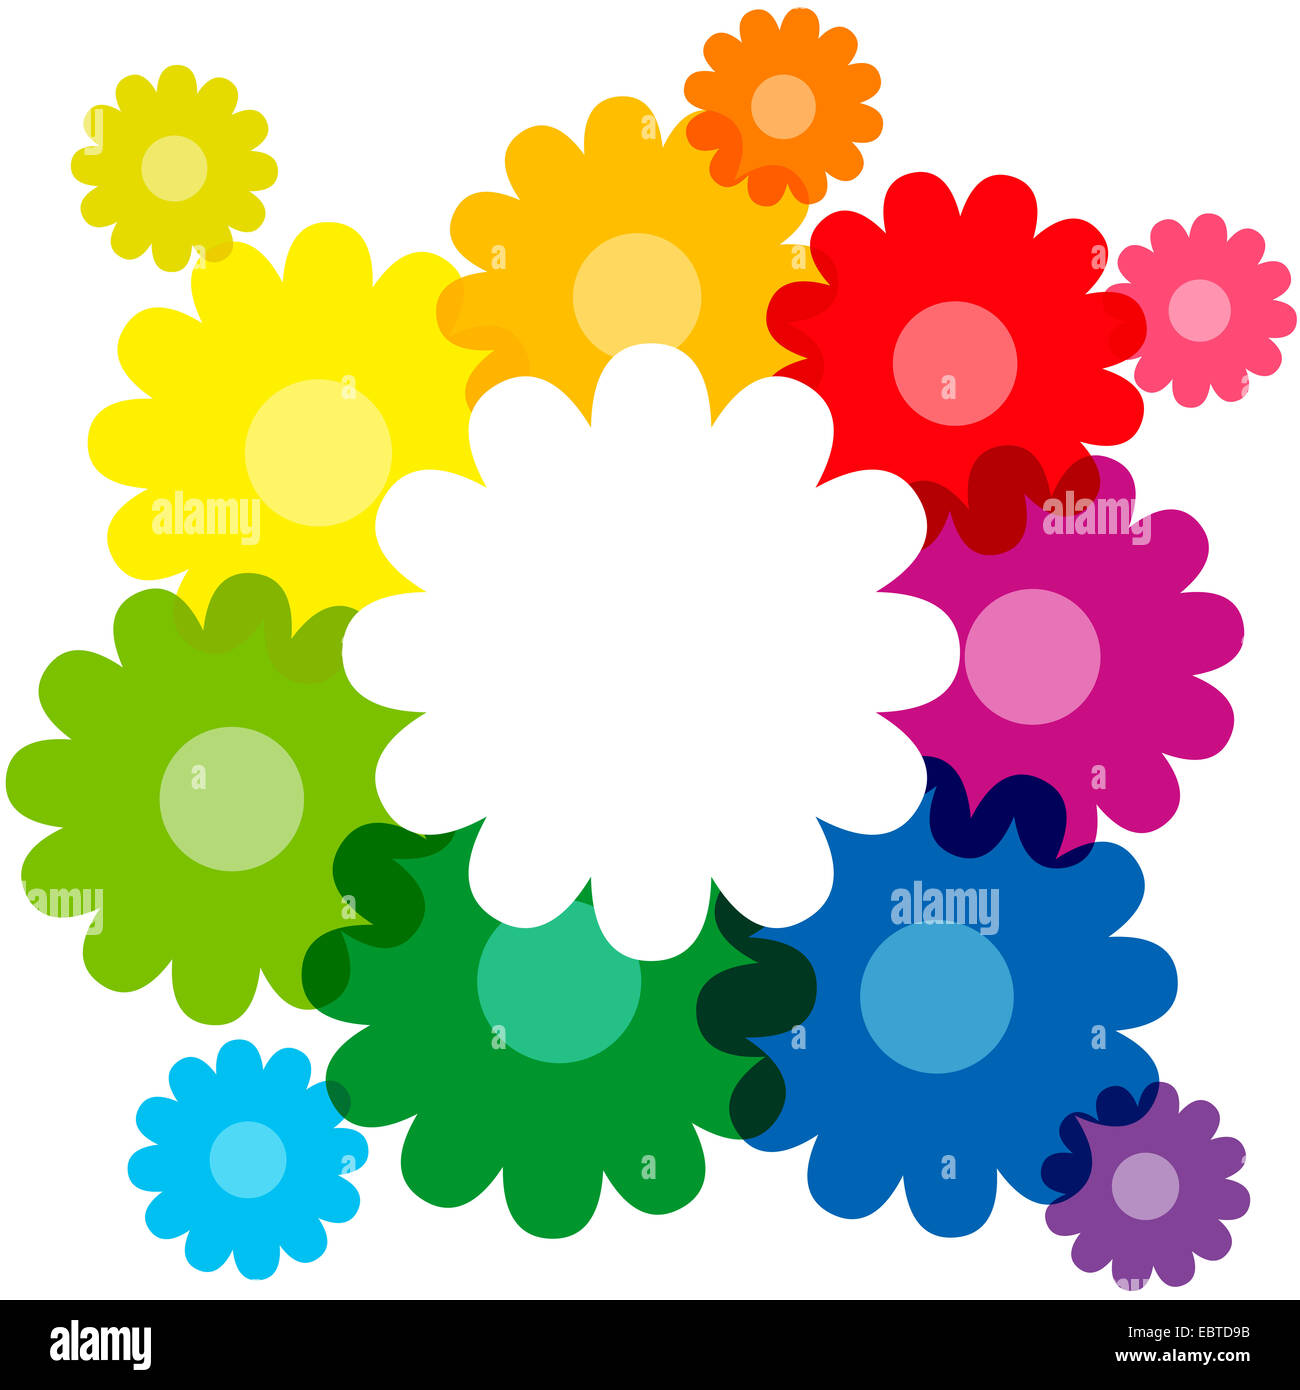 Rainbow Colored Flowers Forming A Colorful Bouquet And Frame To